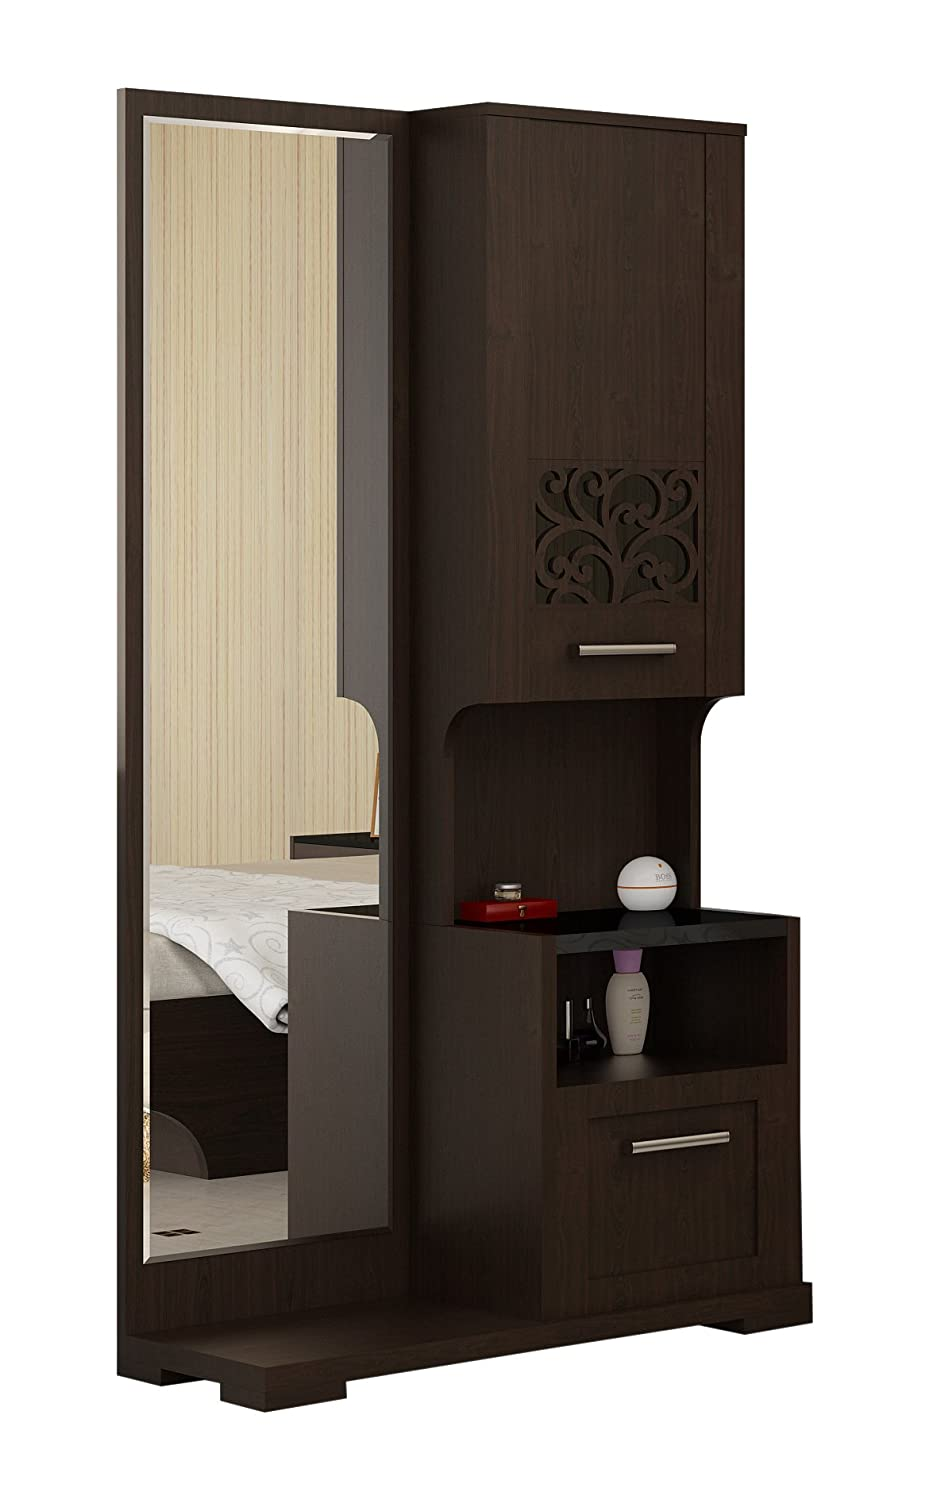 Indian Wardrobe Designs With Dressing Table | www.imgkid